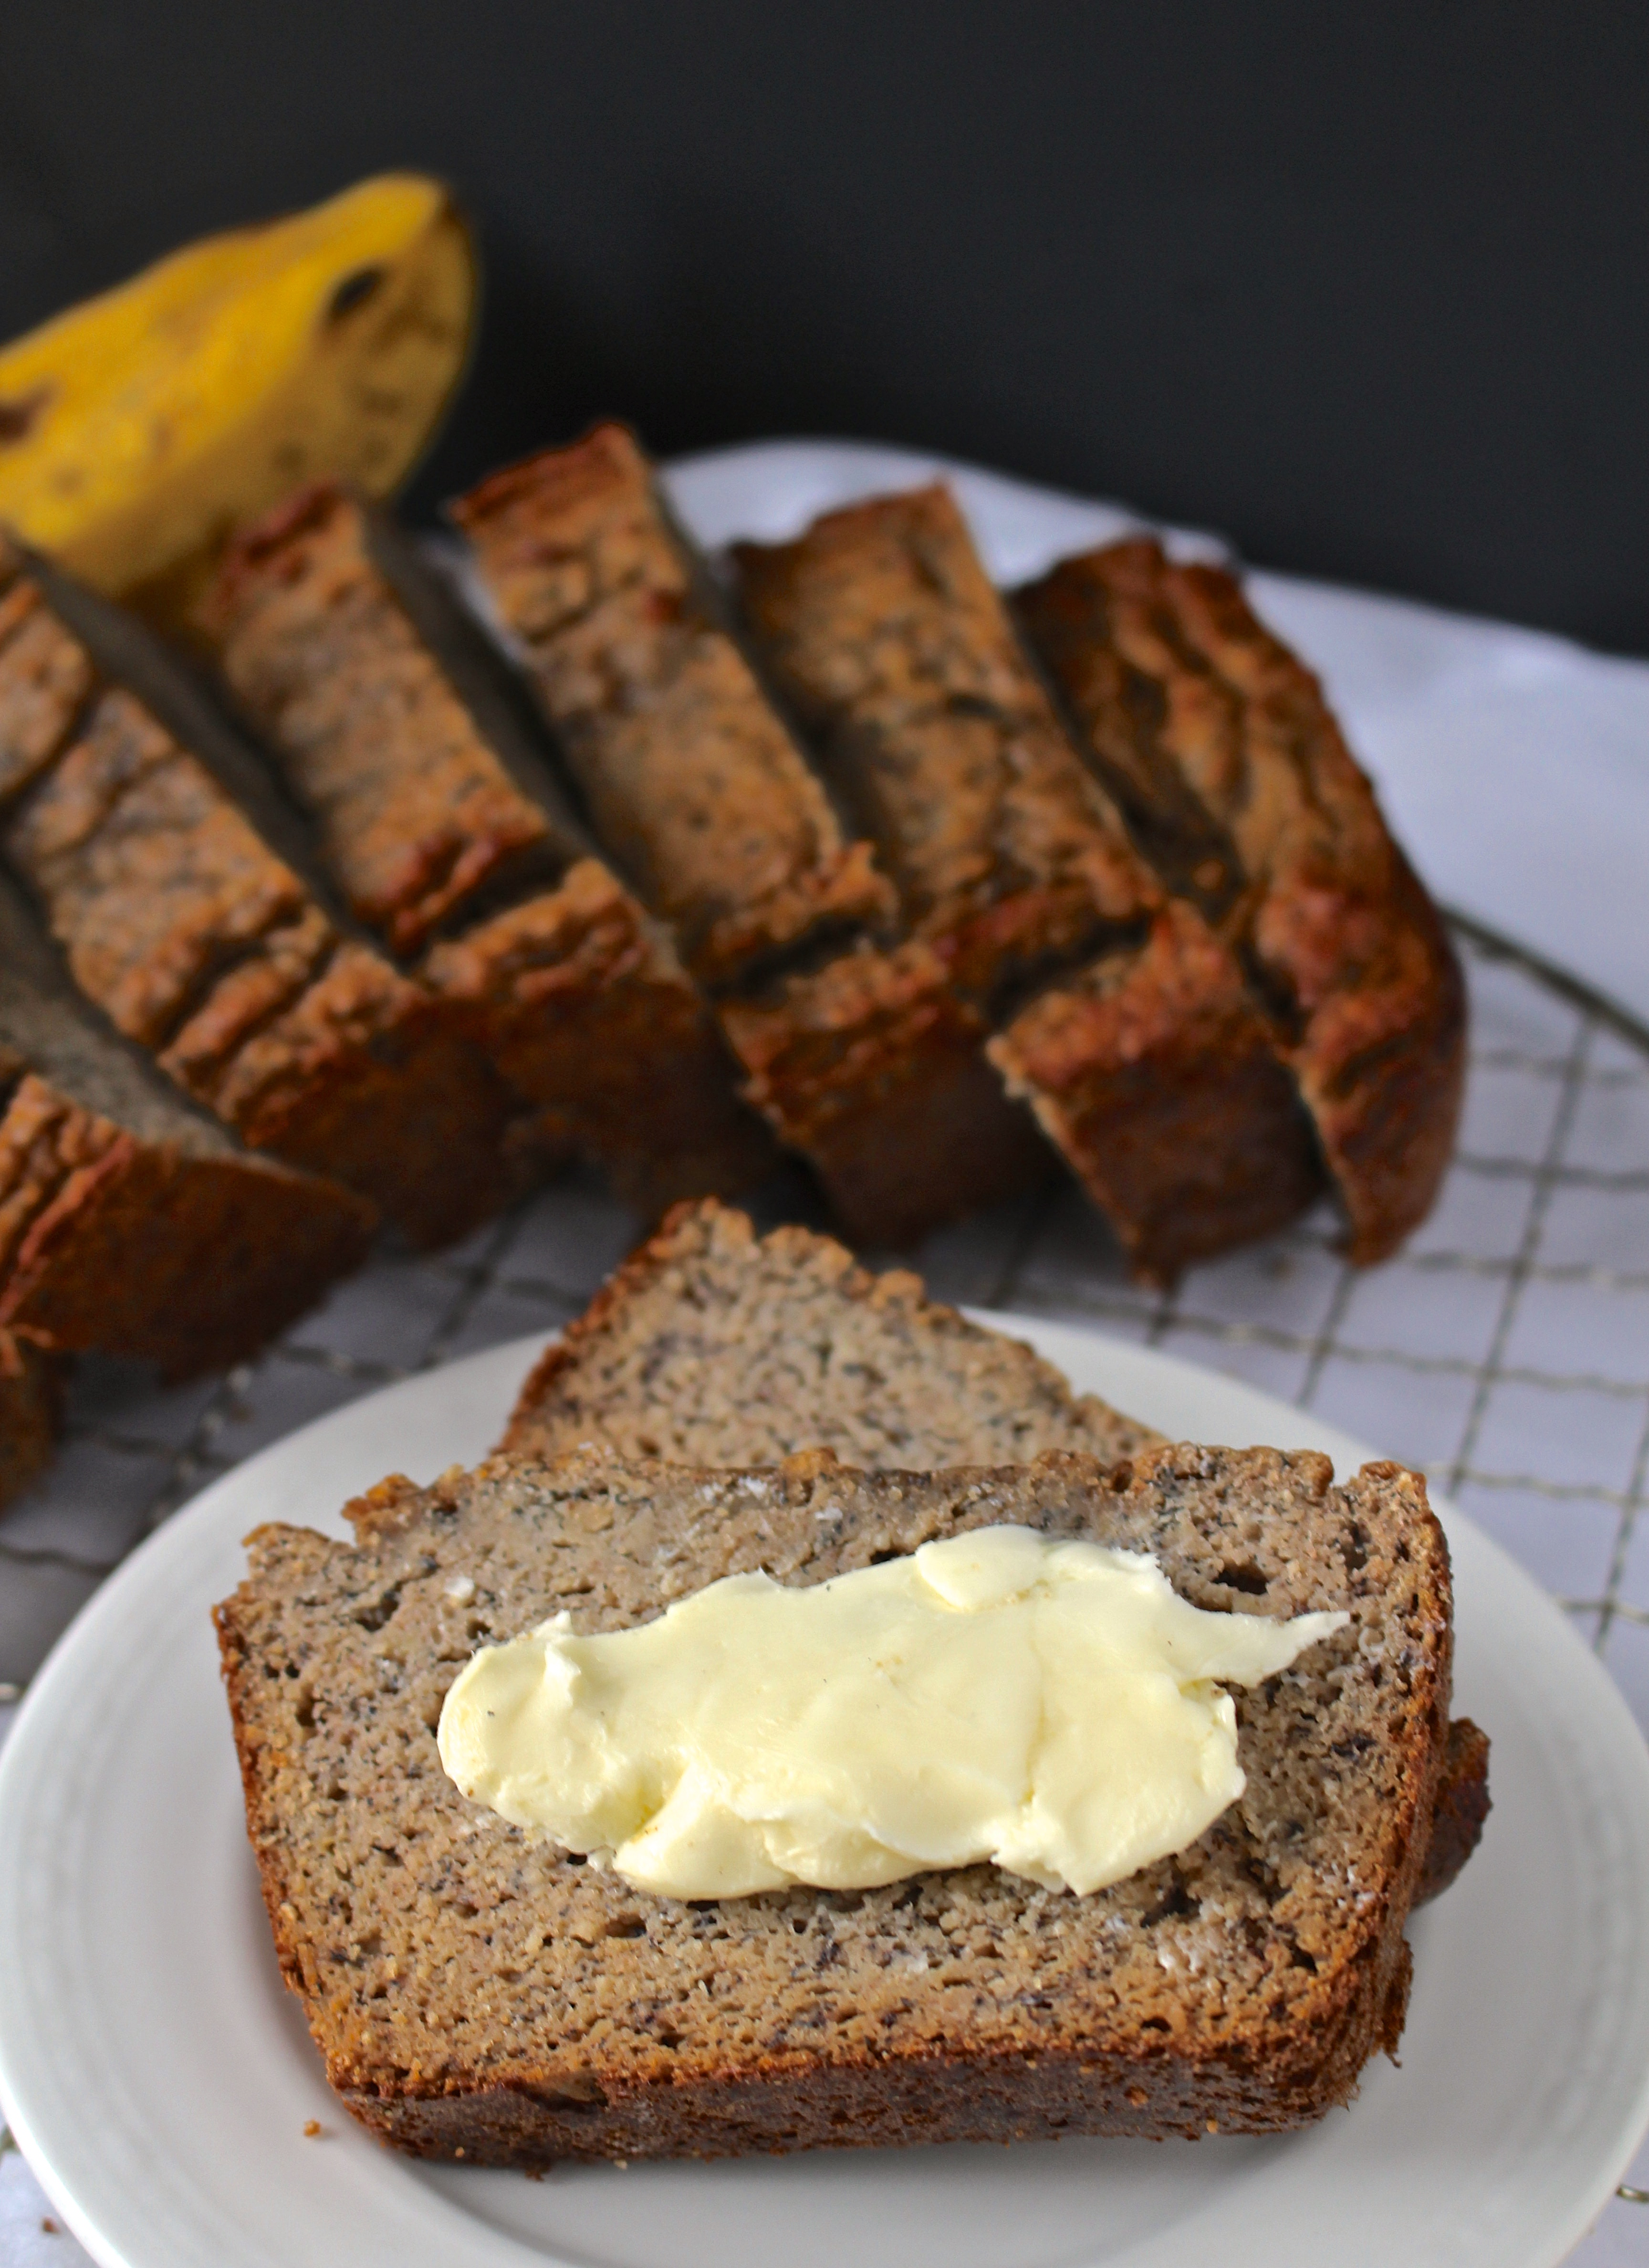 This Paleo Banana Bread is so simple to make- using only a few ingredients, but tastes incredible! Perfect for breakfast.